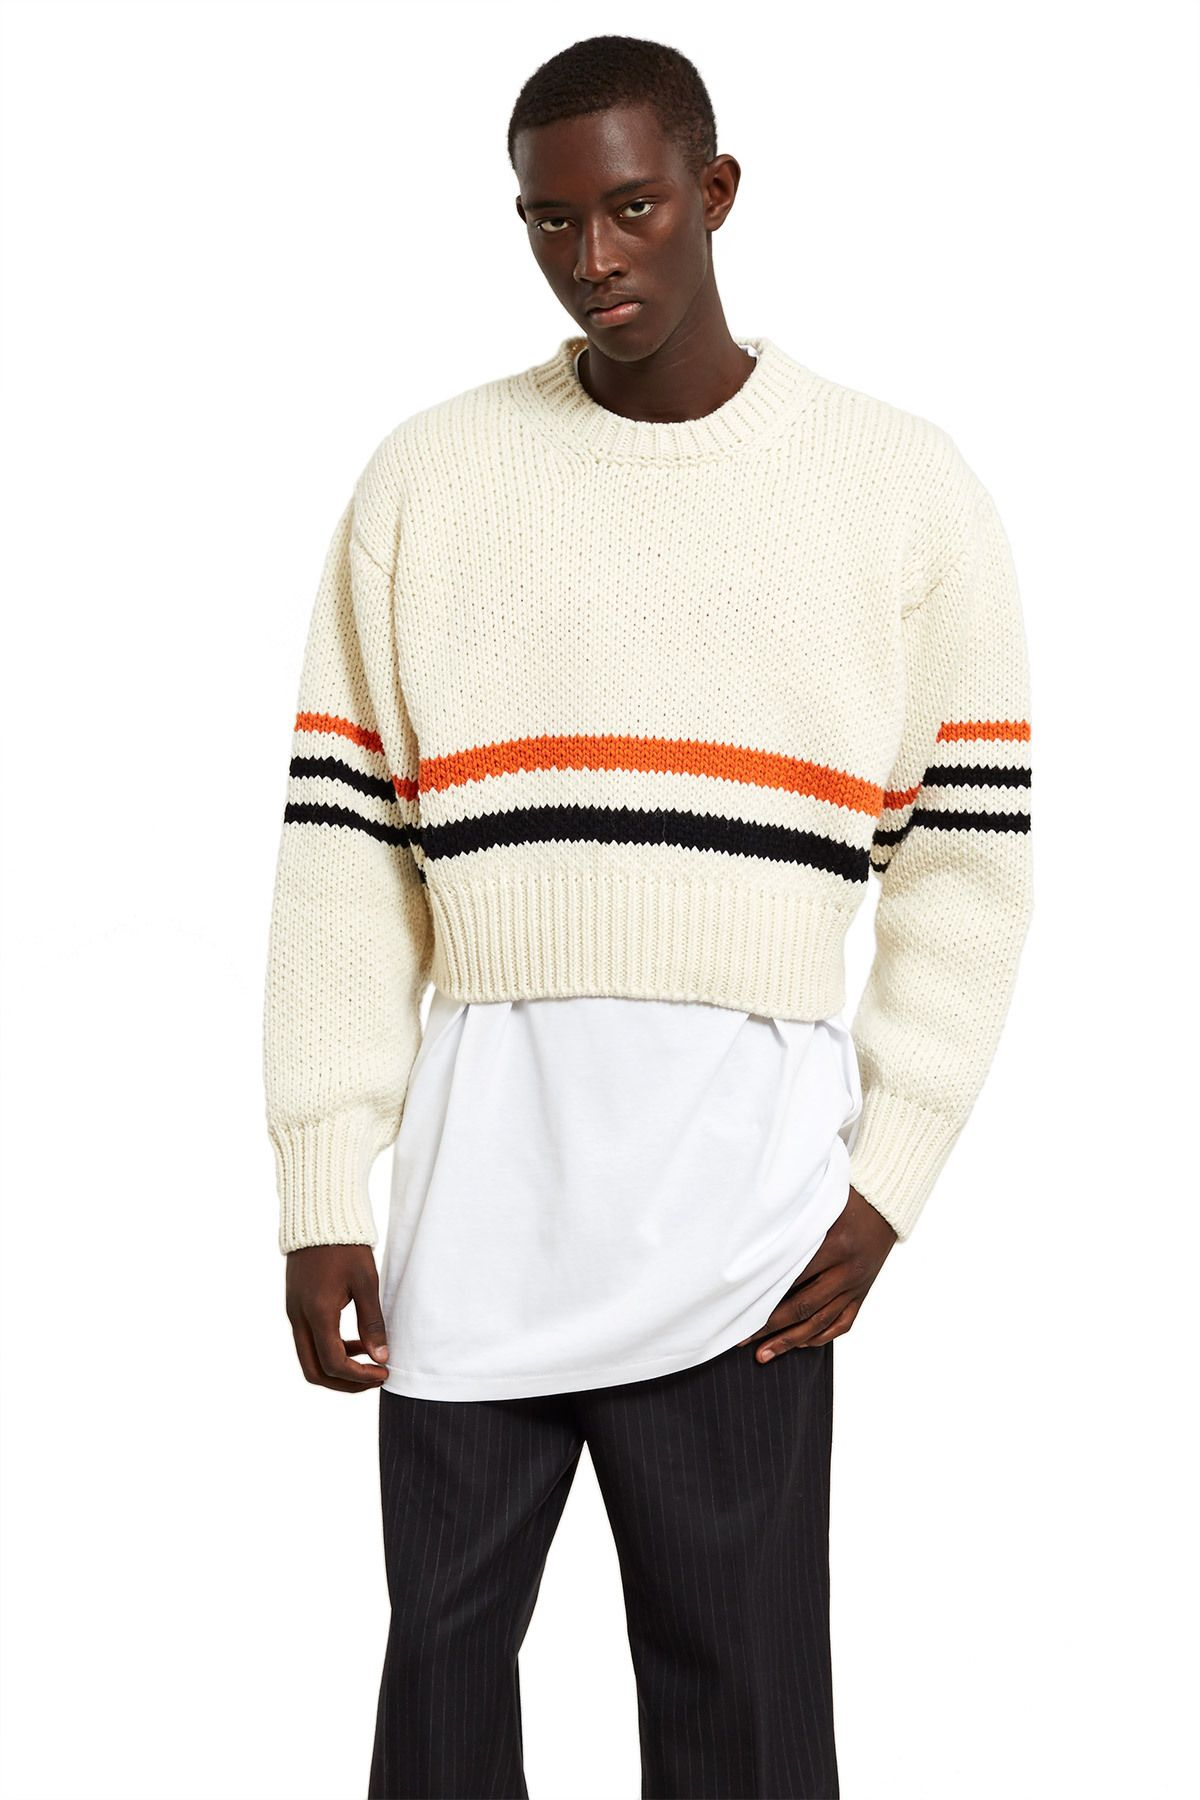 837d59dc70d919 Raf Simons, Striped Americano Sweater Spun in Italy using medium-weight wool,  this American-inspired cropped sweater features the season's two-tone  stripes ...